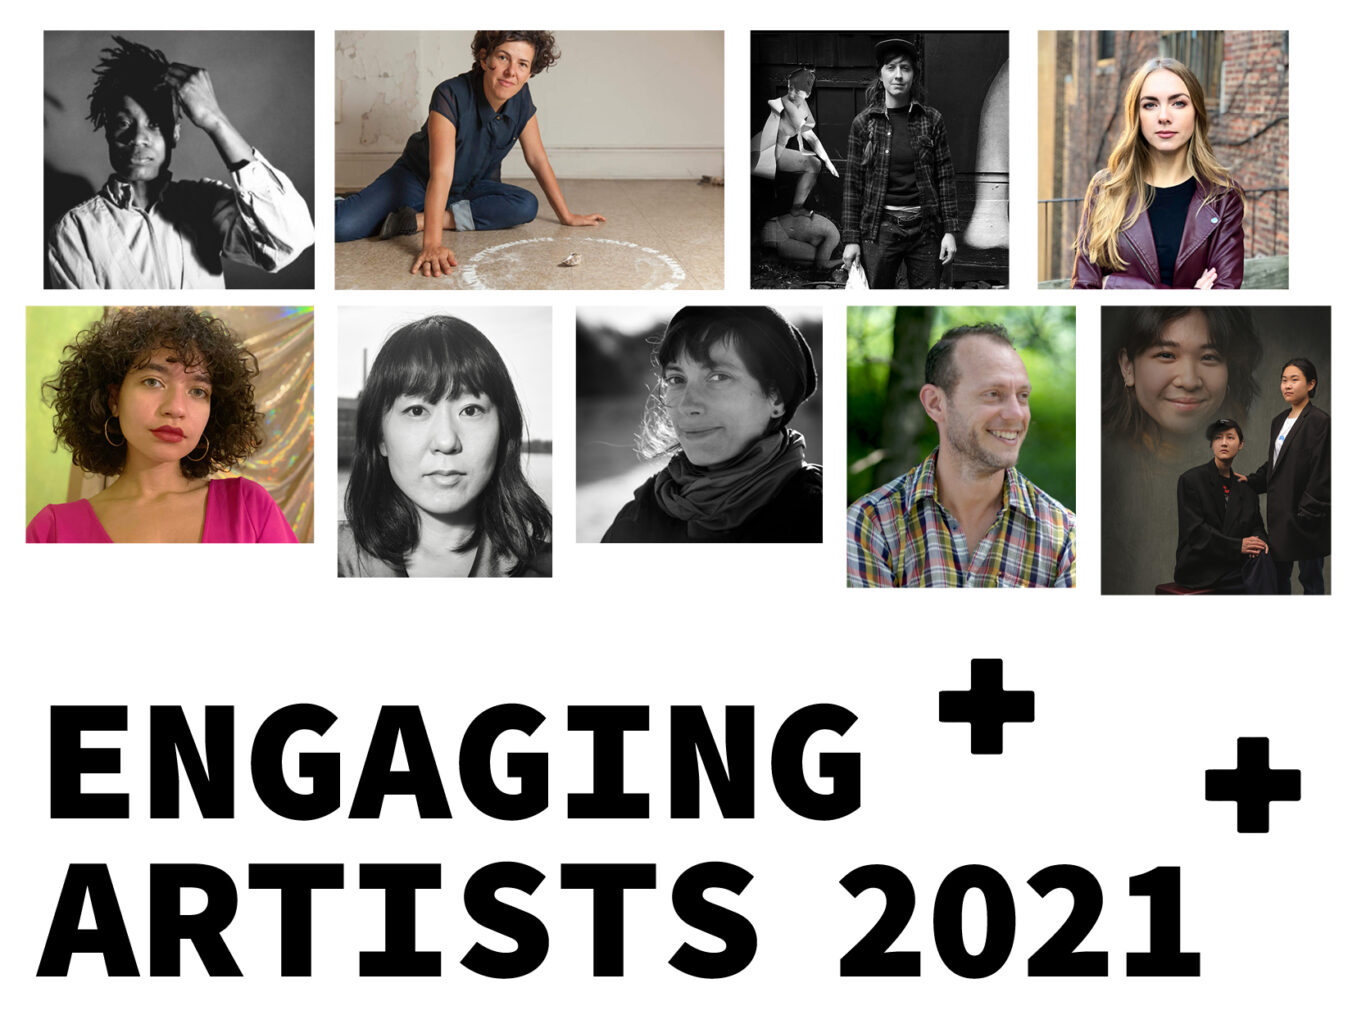 """A loose grid of headshots of 8 artists and one artist collective with 3 people. There is black text saying """"Engaging Artists 2021"""" below the grid. They are a mix of ages, mostly young and mid-age, mostly female or female presenting, one male. There are white people and people of color."""